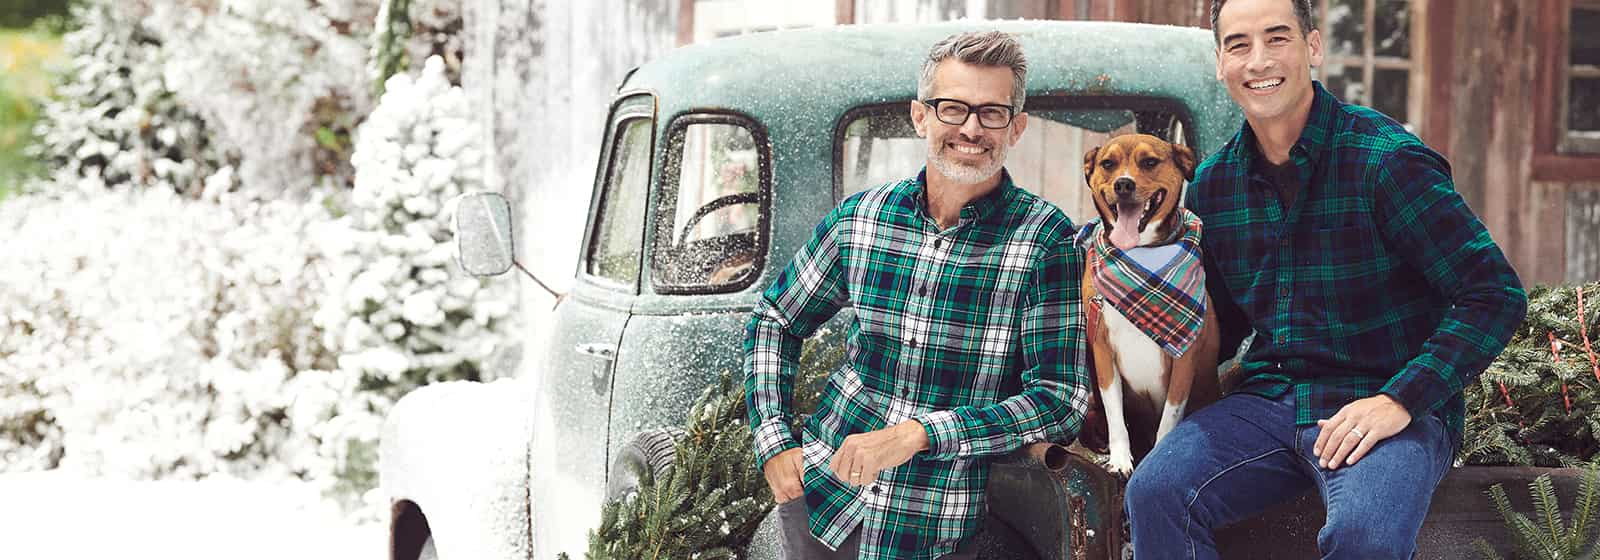 When to Wear Flannel: 5 Occasions to Dress Up a Flannel